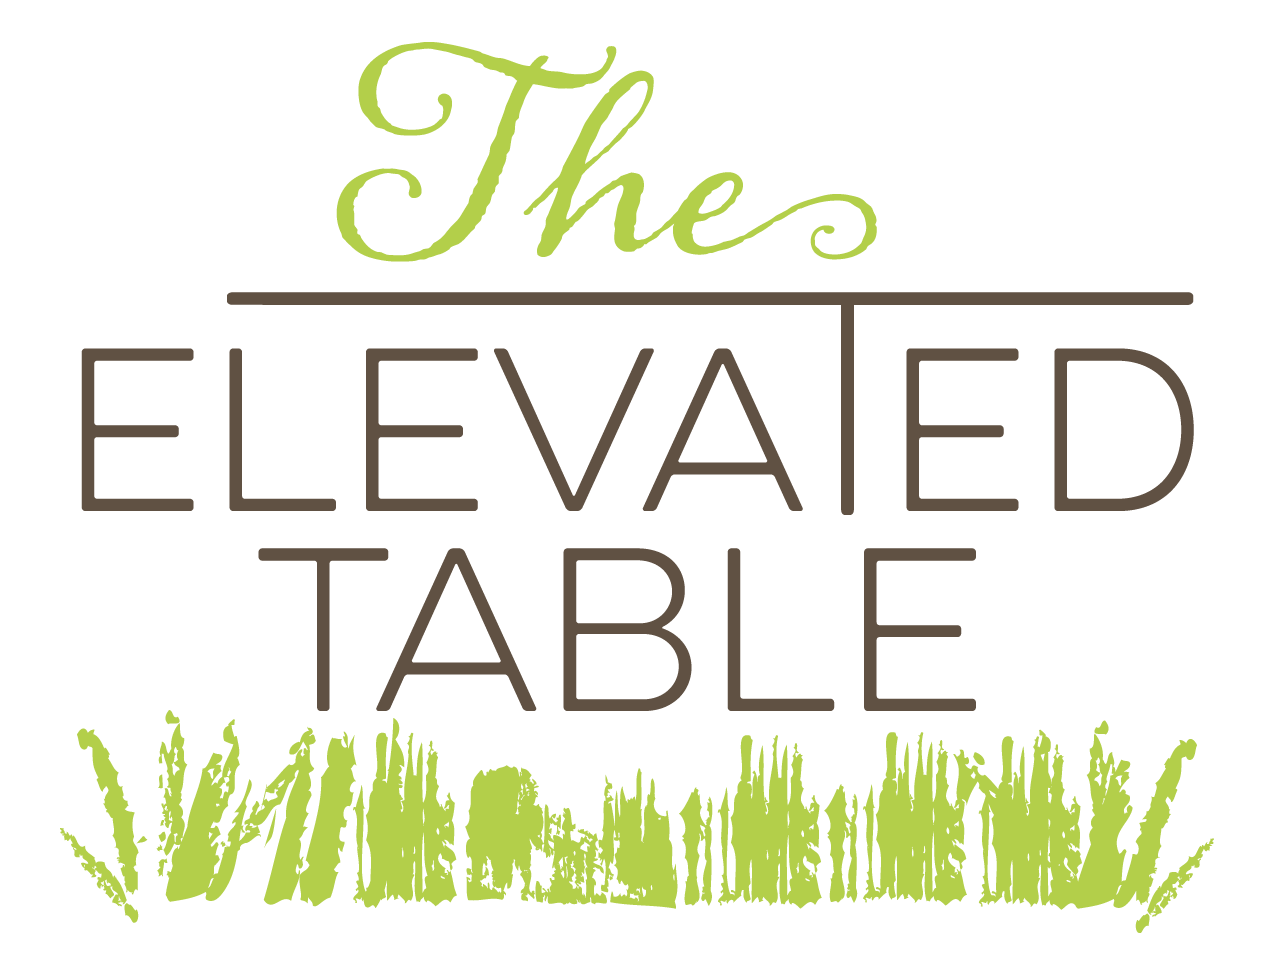 The Elevated Table